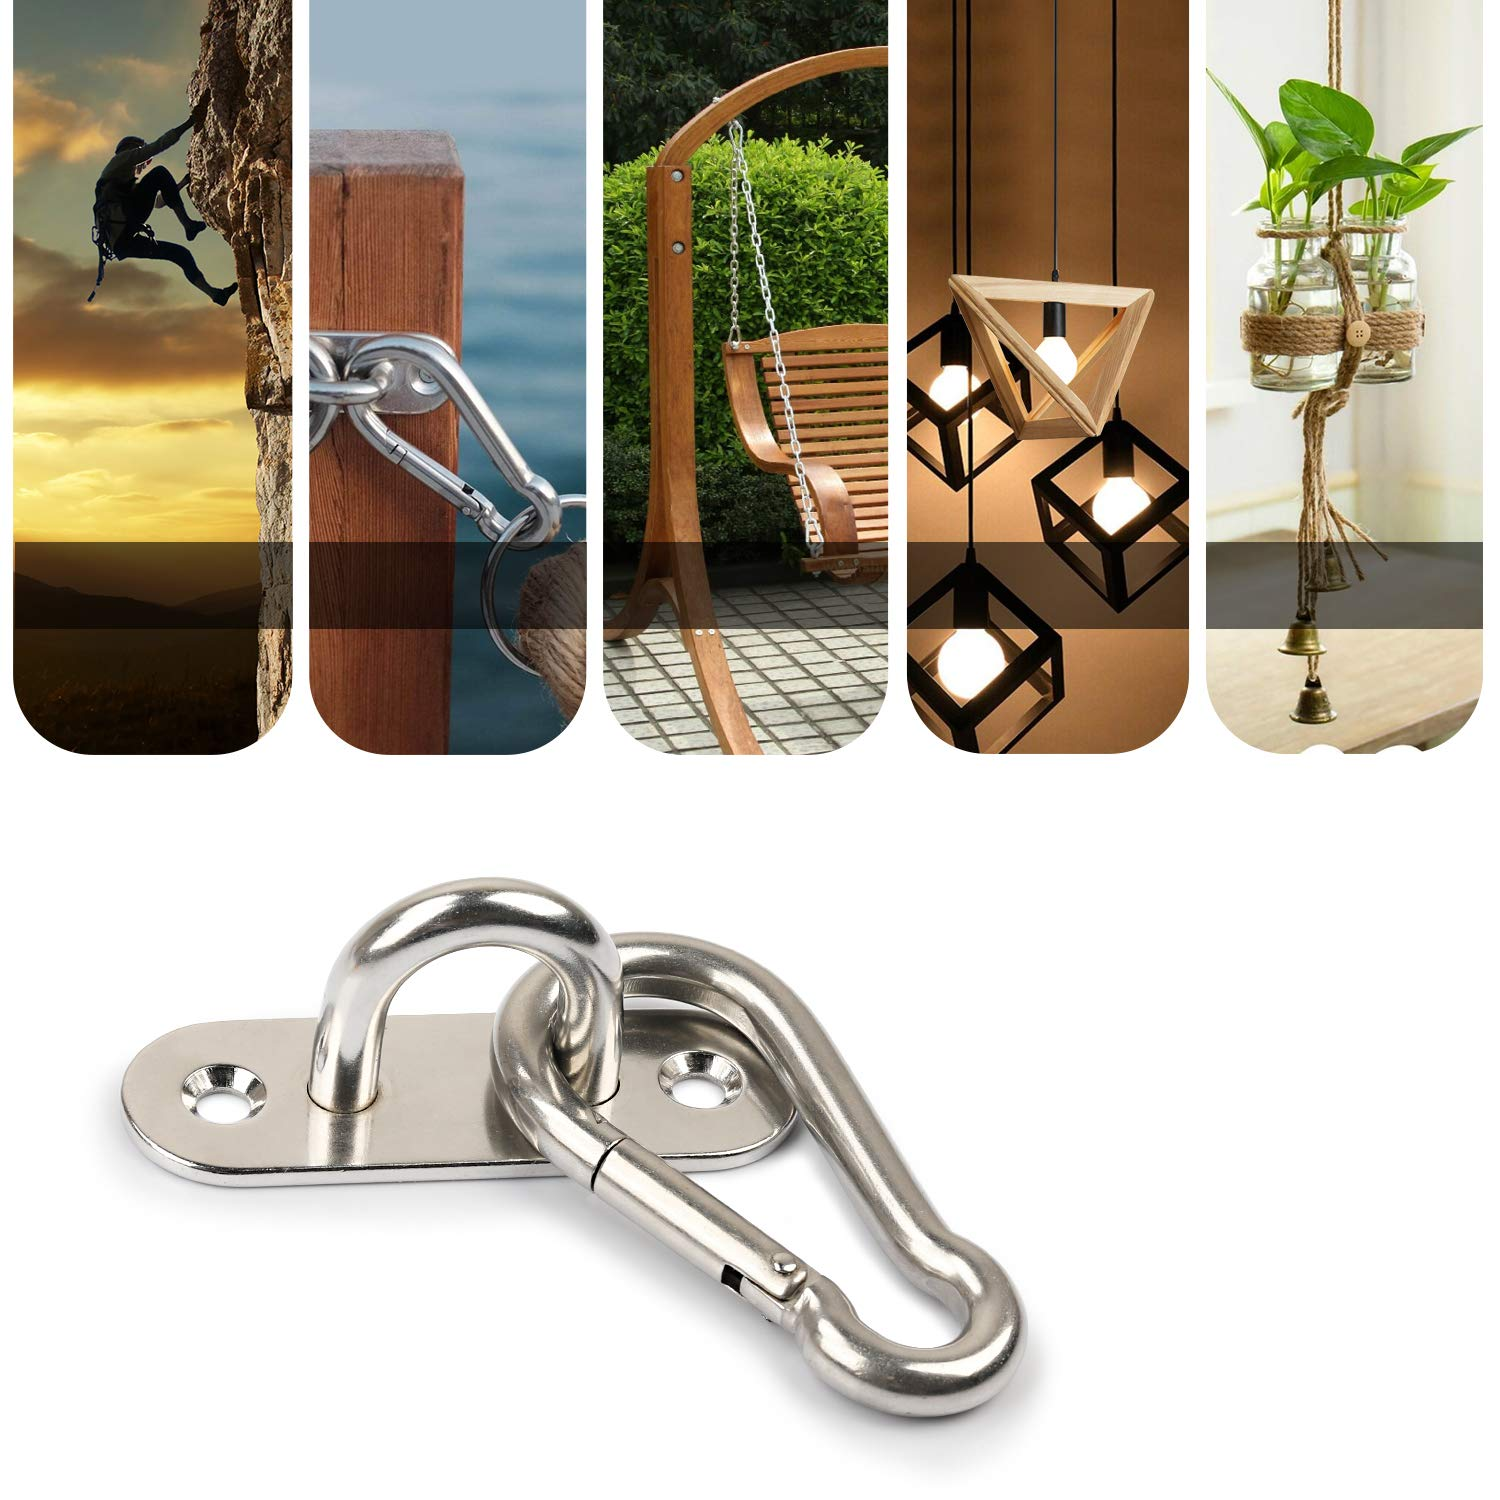 3.1 Inch 304 Stainless Steel Spring Snap Hook and Ceiling Hook Set Heavy Duty Carabiner Clips Pad Eye Plate Staple Hook with Screws for Boat Application Loop Wall Mount Swing Hammock Camping